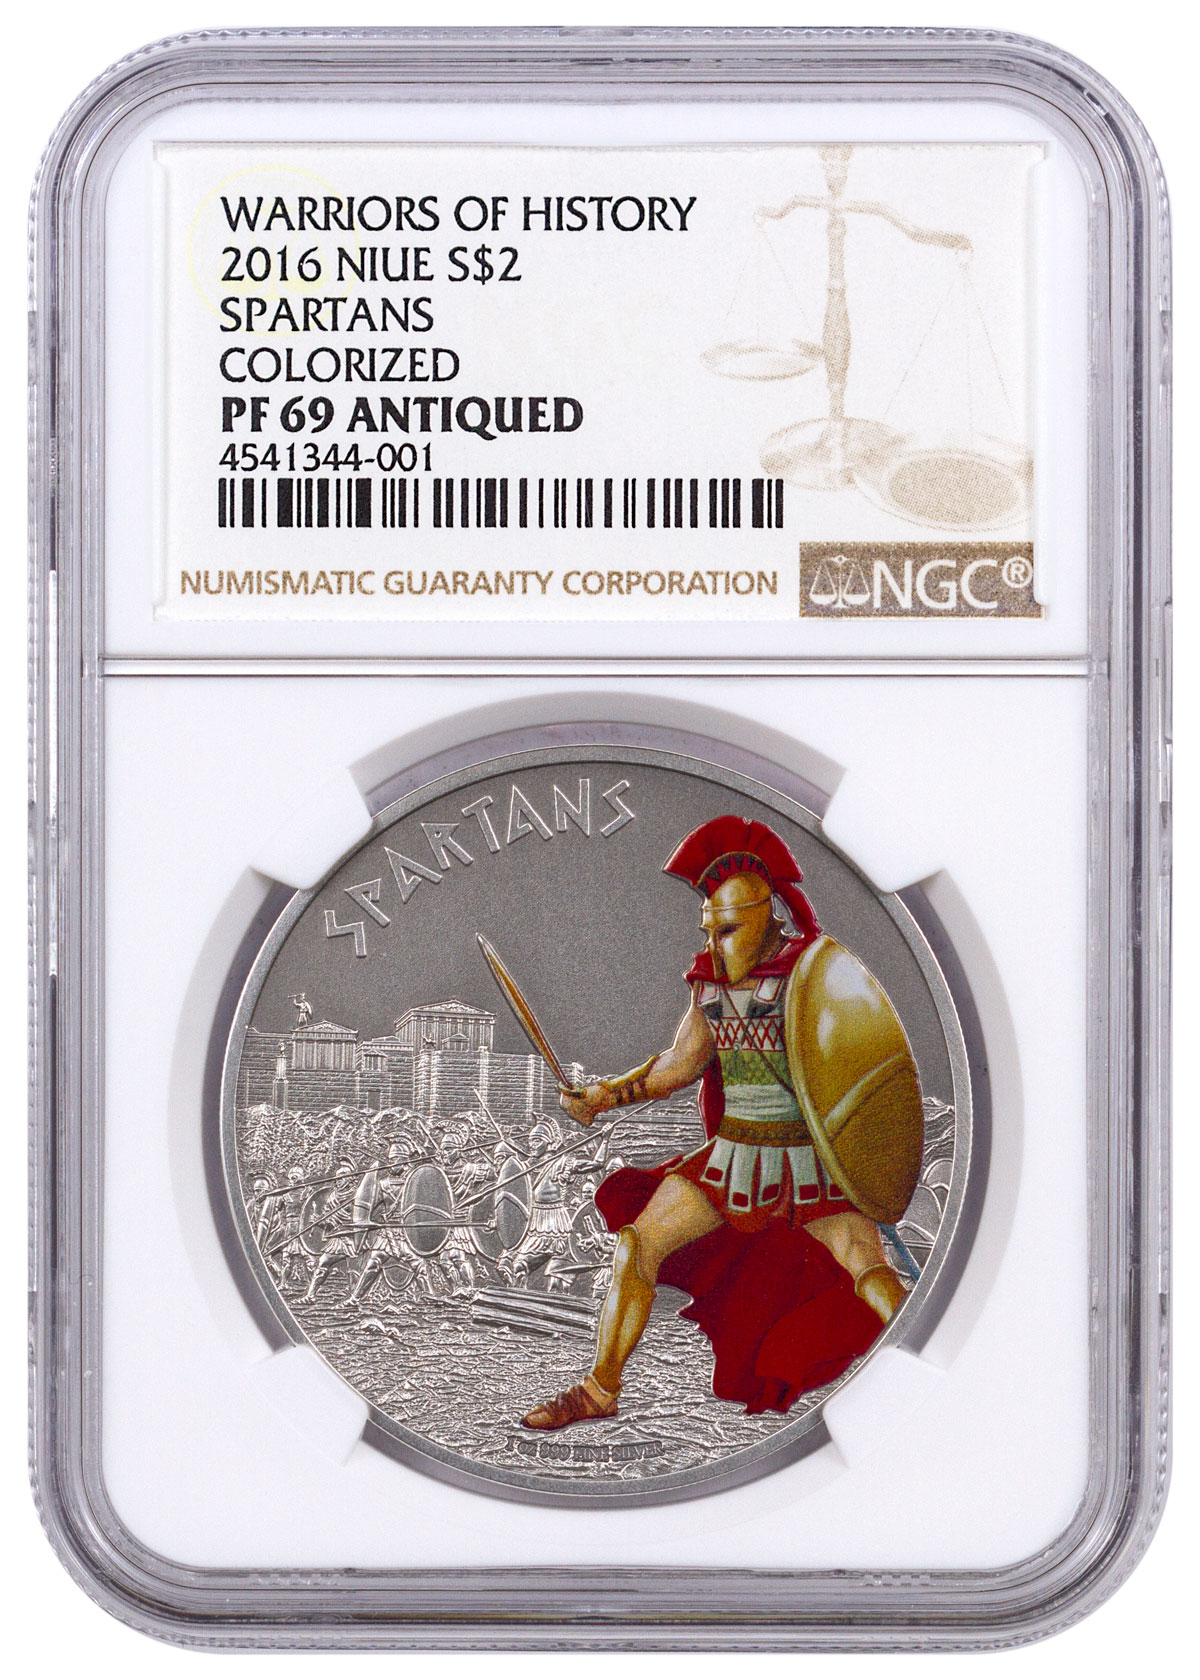 2016 Niue Warriors of History - Spartans 1 oz Silver Antiqued Colorized Proof $2 NGC PF69